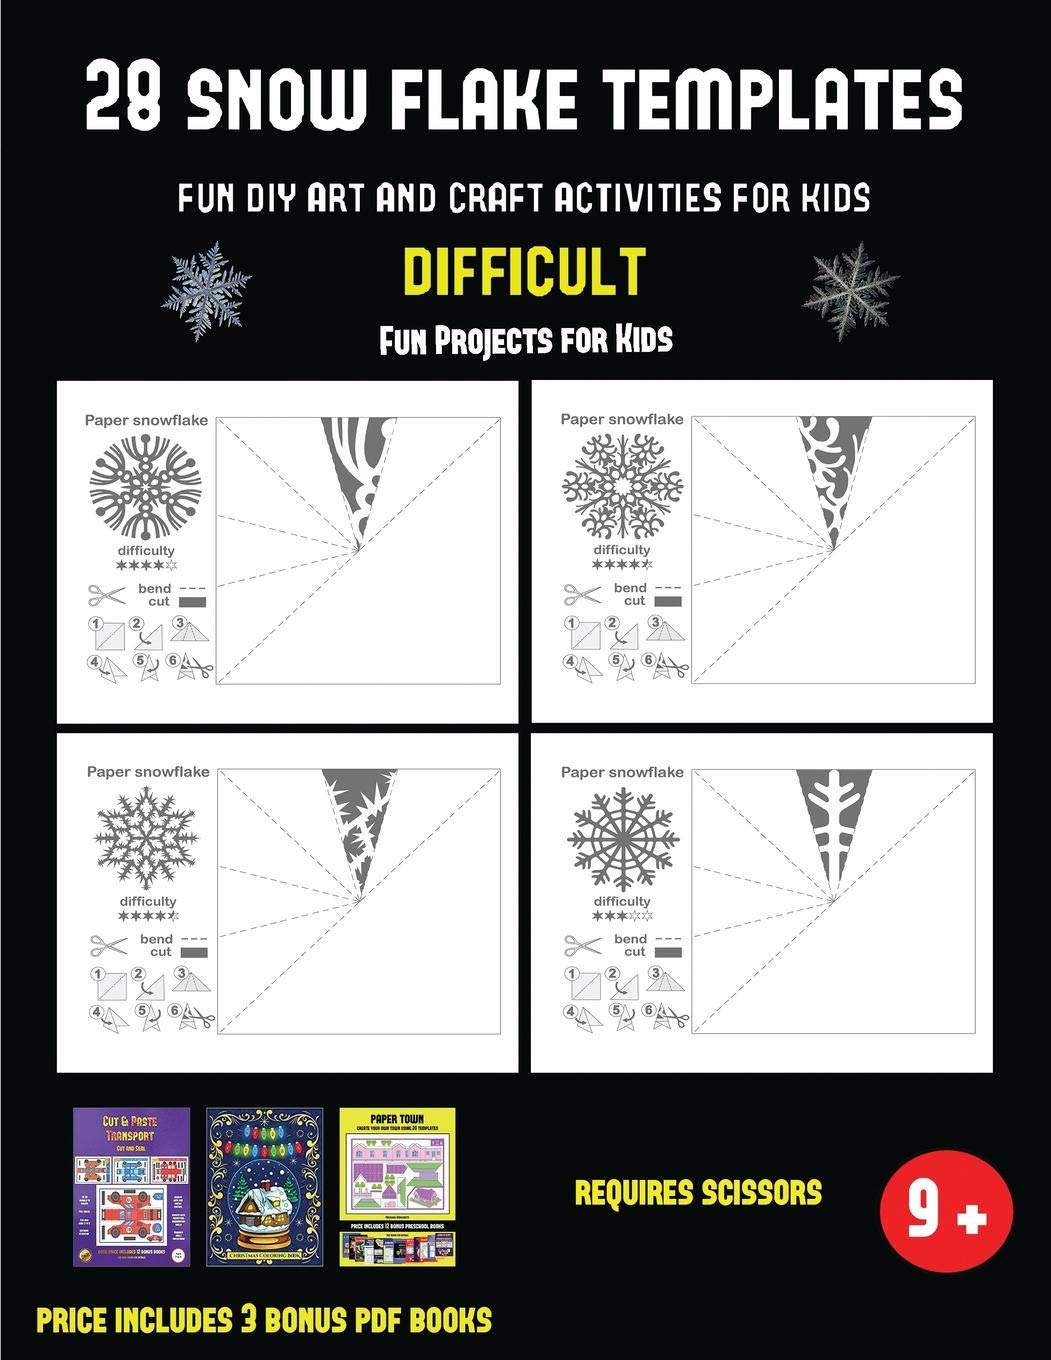 Buy Fun Projects for Kids (28 snowflake templates Fun DIY